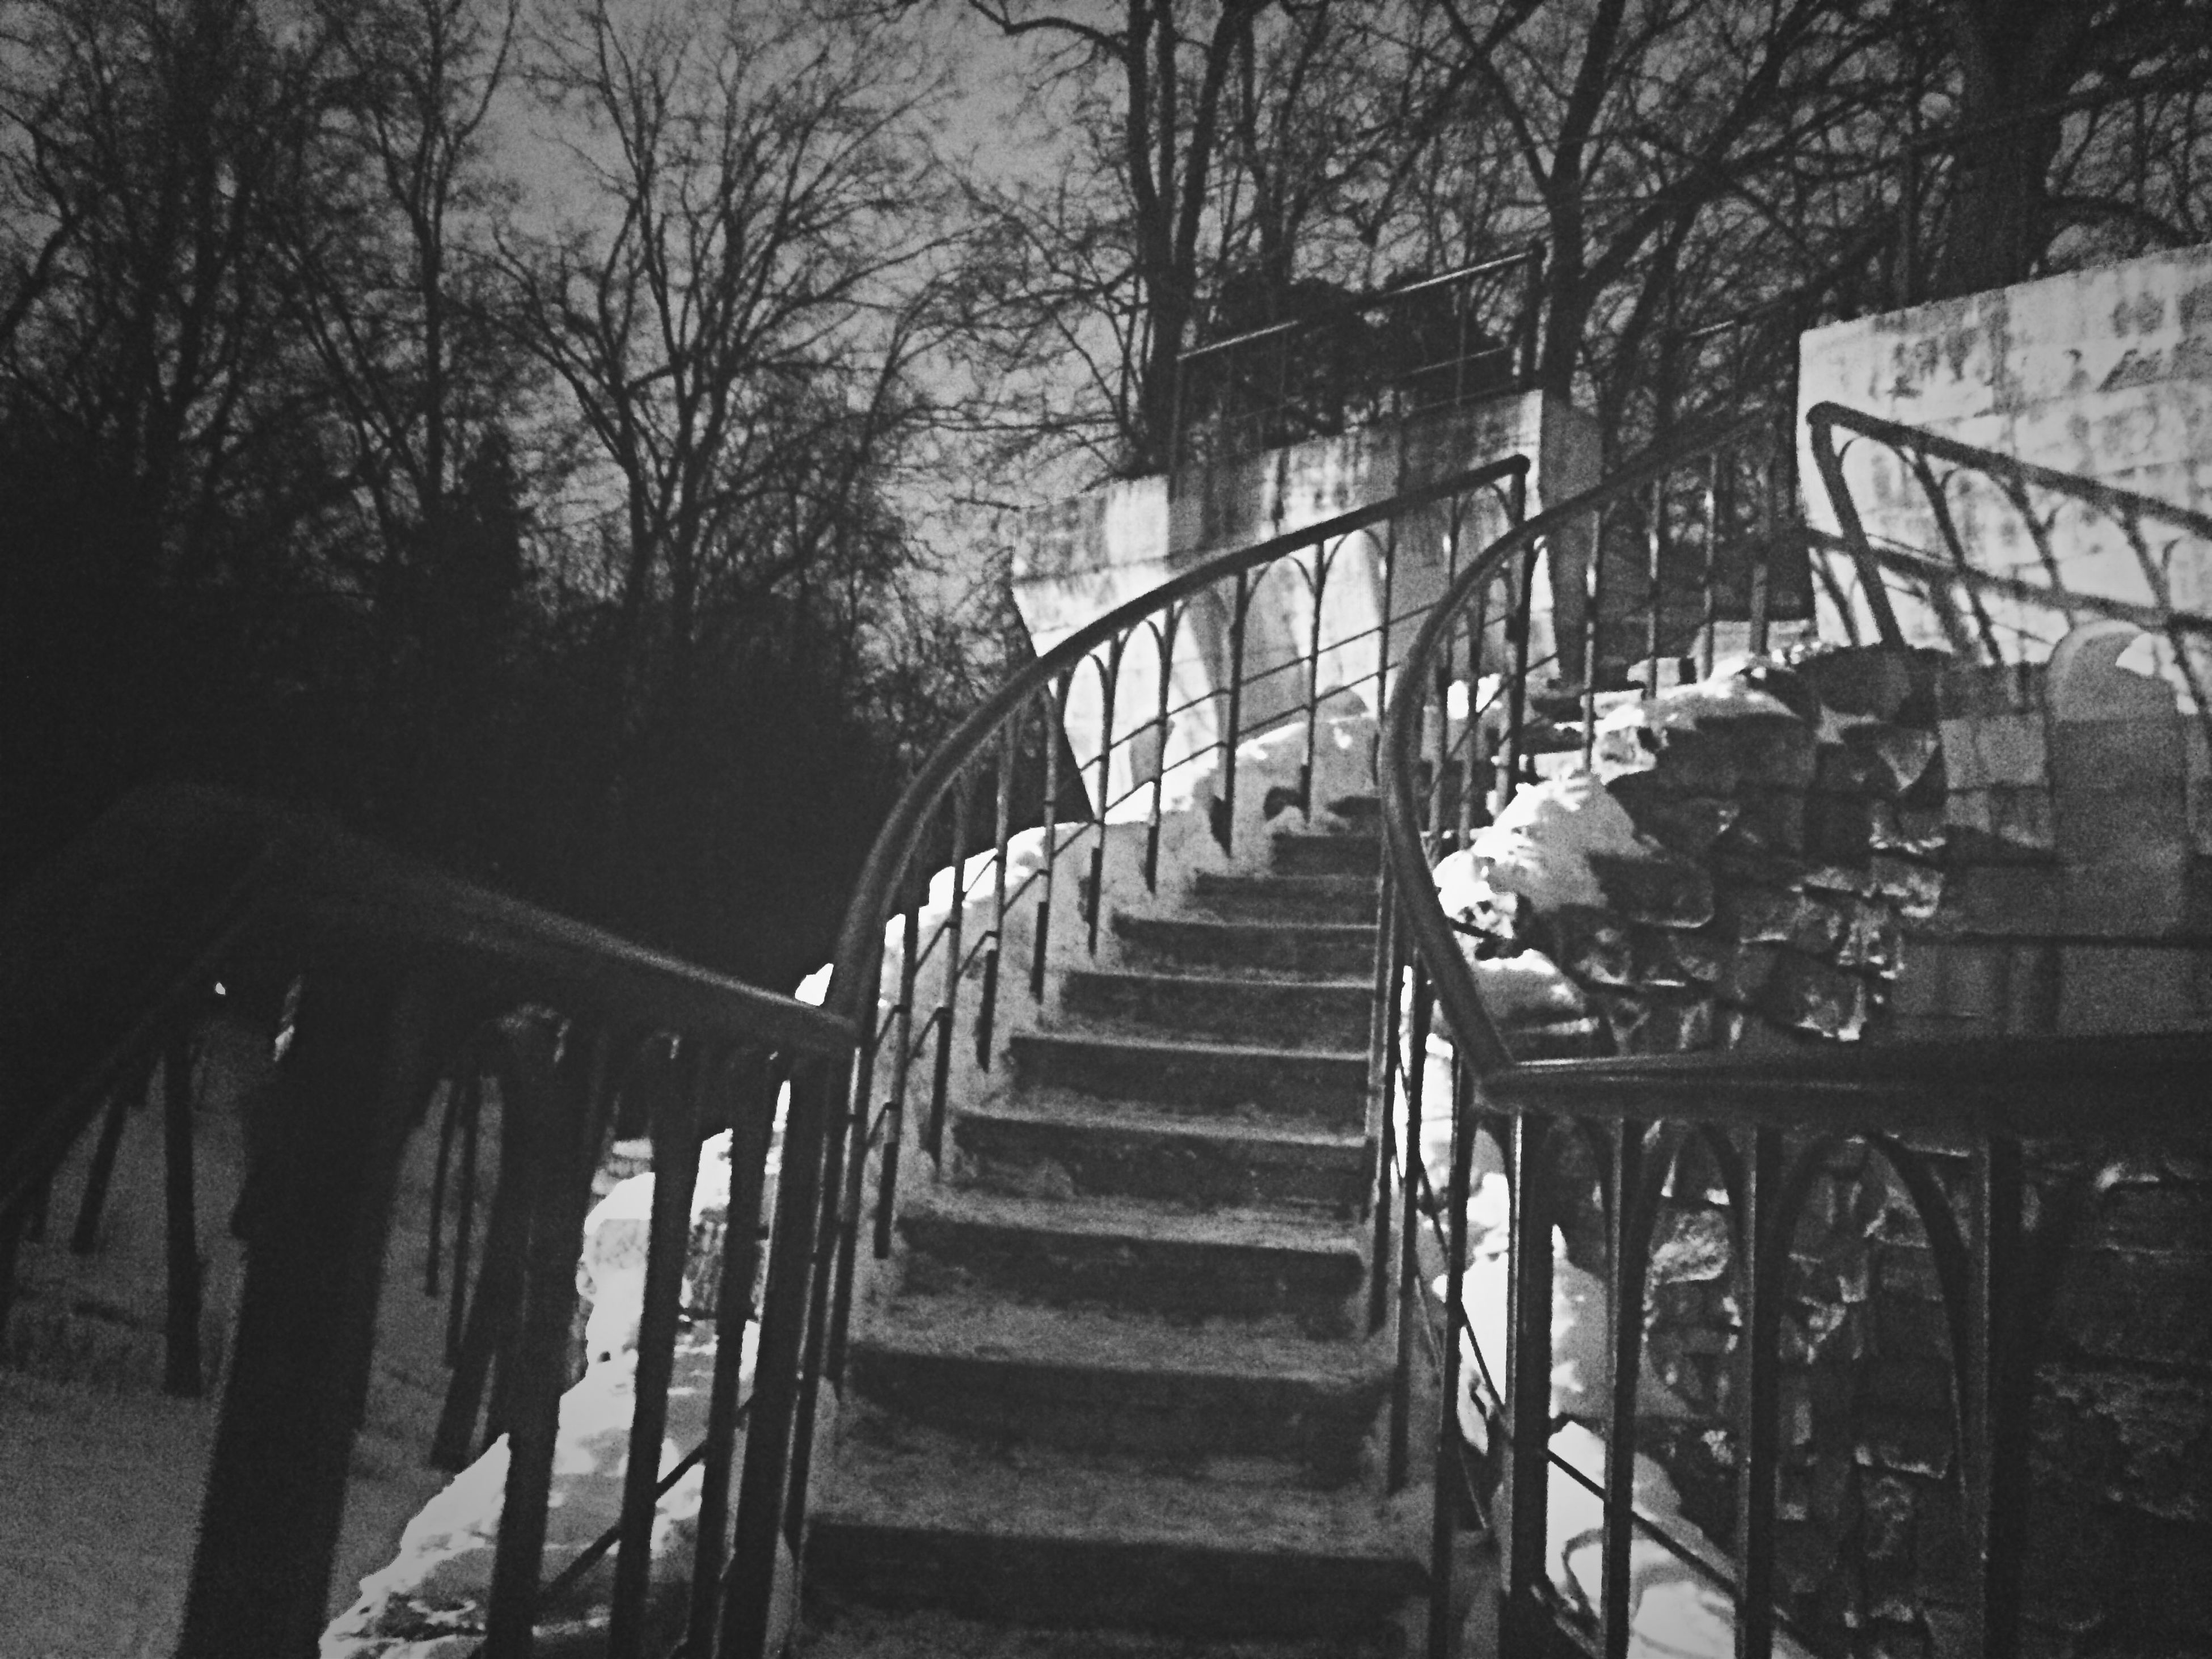 railing, steps, steps and staircases, tree, built structure, staircase, architecture, the way forward, footbridge, stairs, no people, building exterior, bridge - man made structure, connection, branch, day, metal, outdoors, nature, sunlight